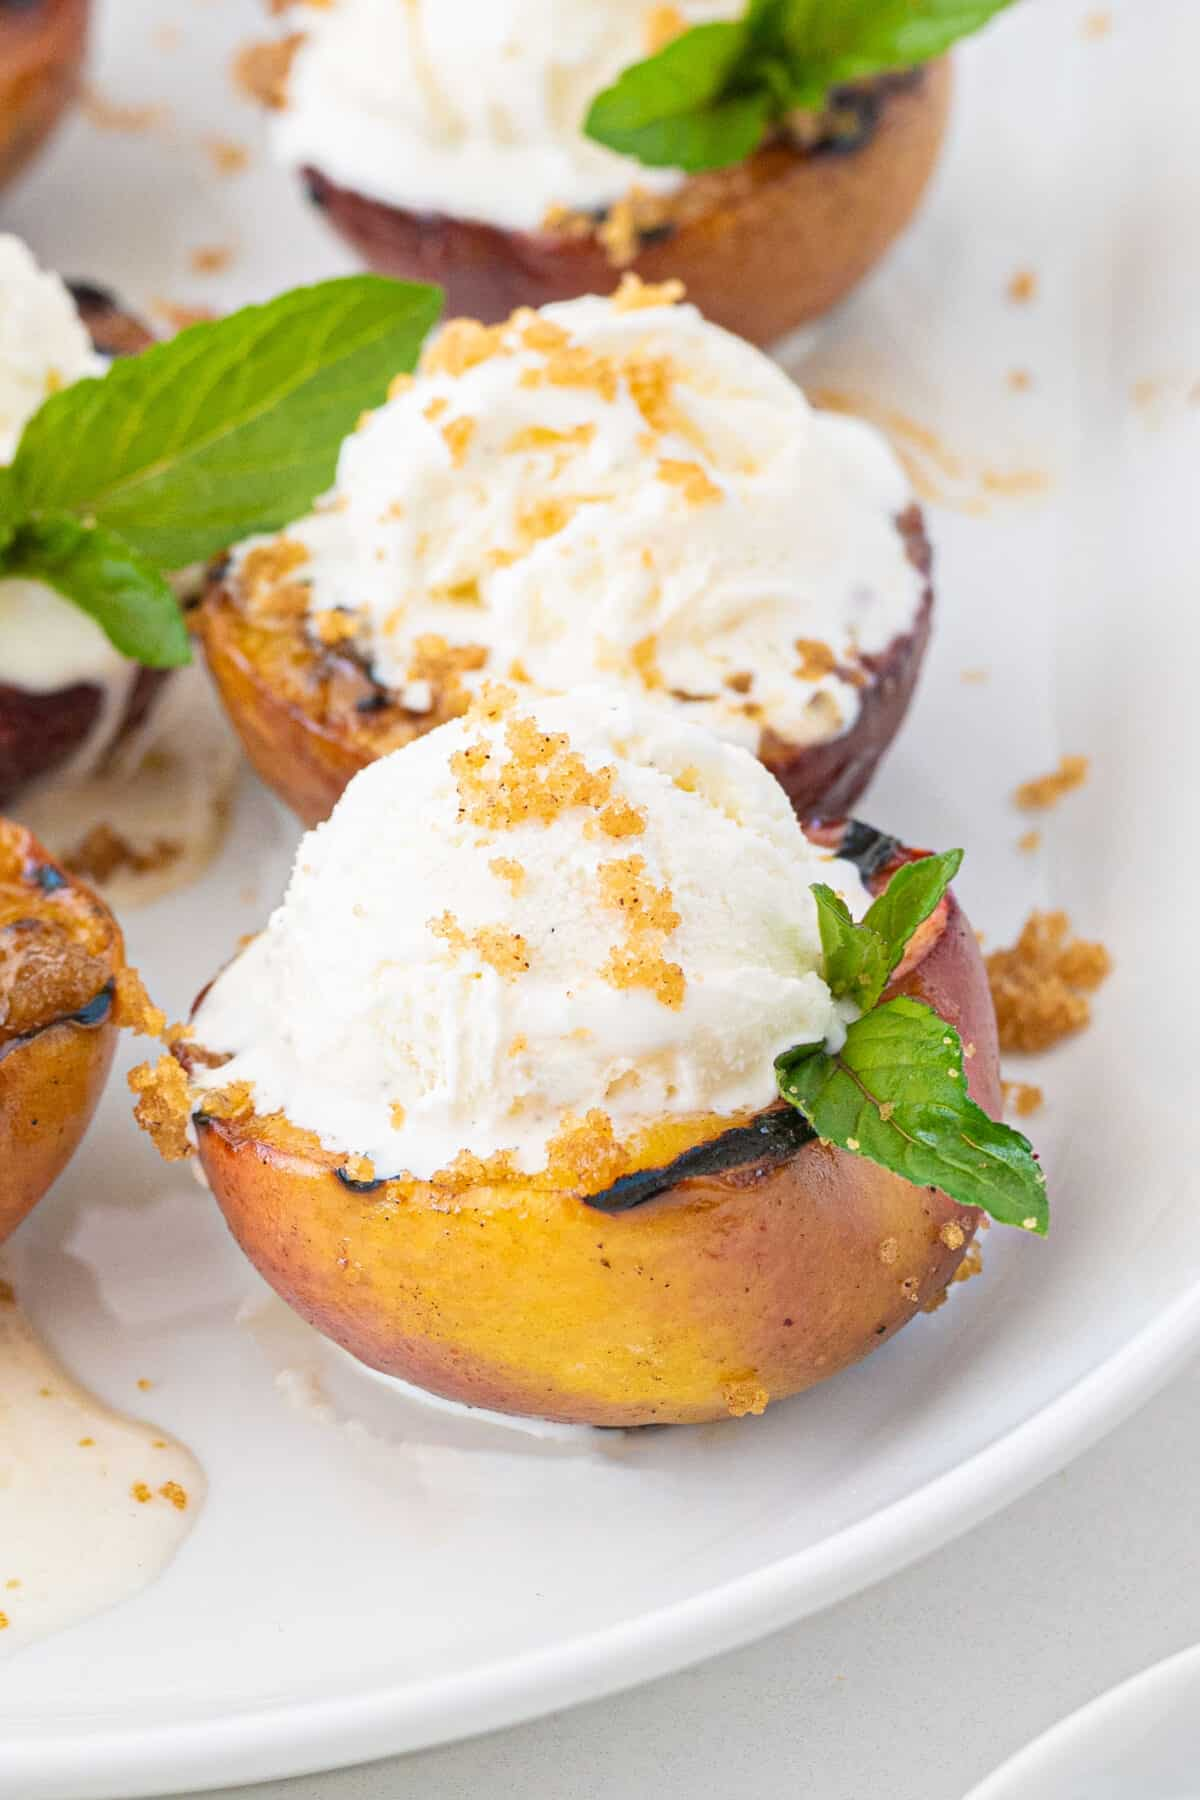 grilled peaches topped with vanilla ice cream and crumbly topping